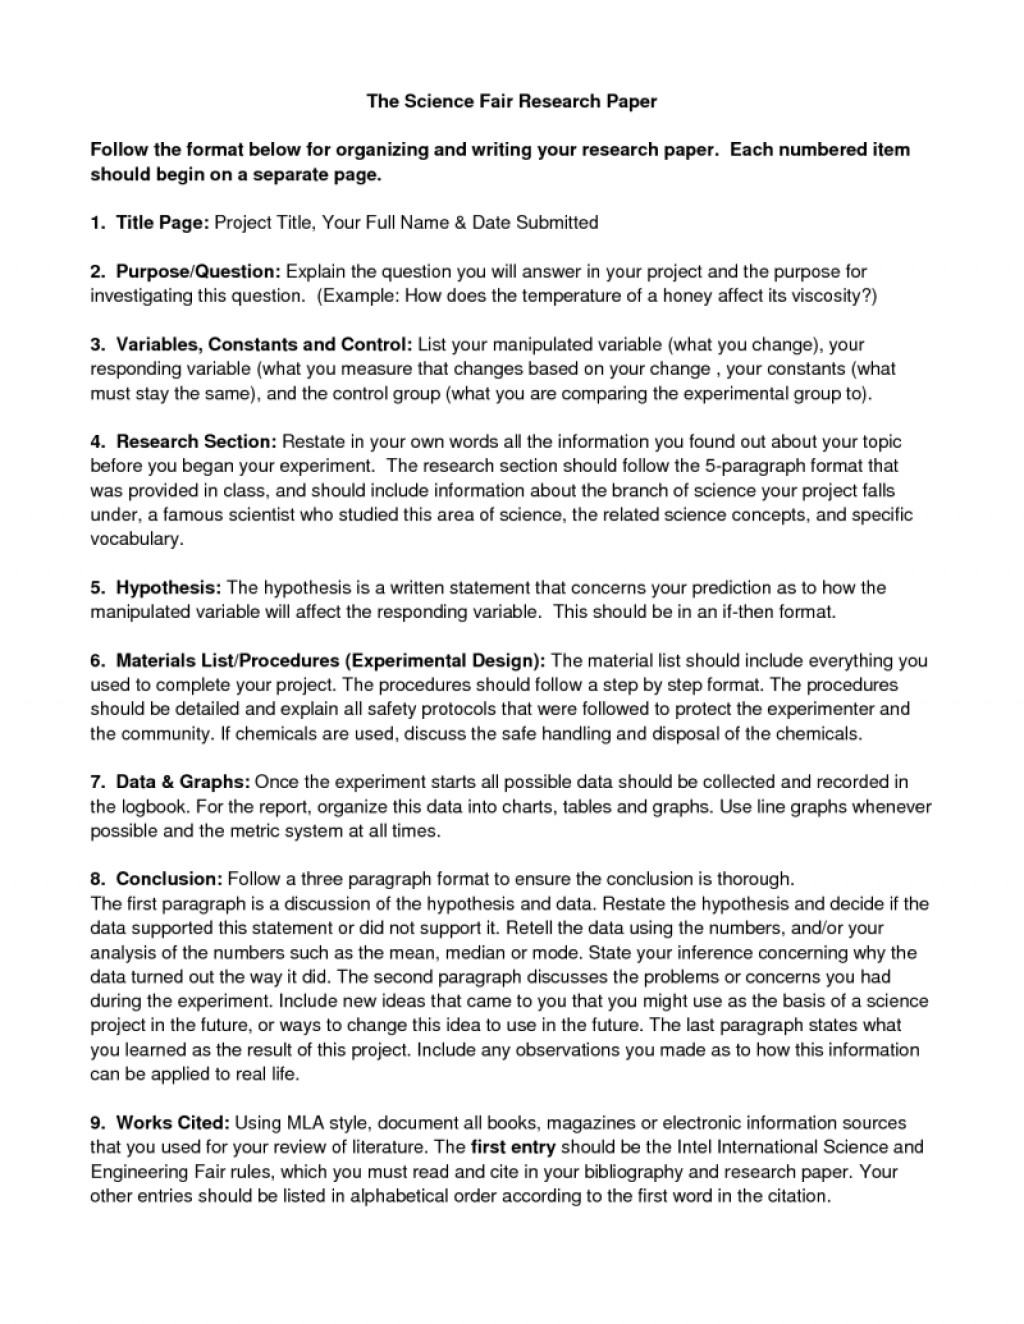 021 Researchr Ideas Of Science Fair Outline Unique Political Guidelines Guidelinesresize8001035 Order Wonderful A Research Paper Making Mla Reviews Large